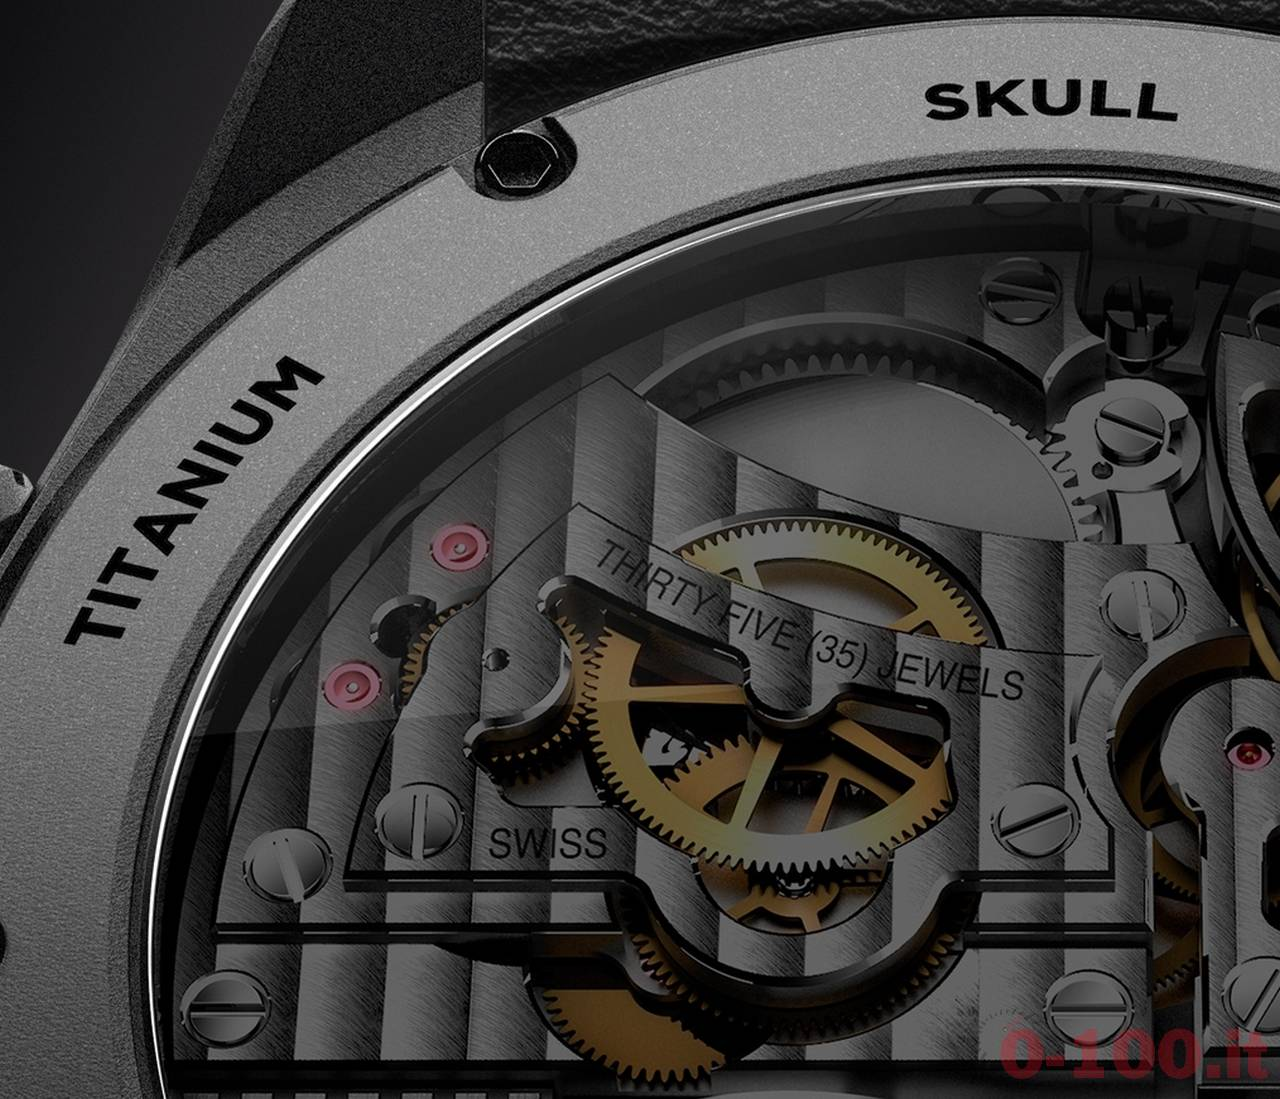 baselworld-2016-hyt-skull-bad-boy-prezzo-price_0-1006